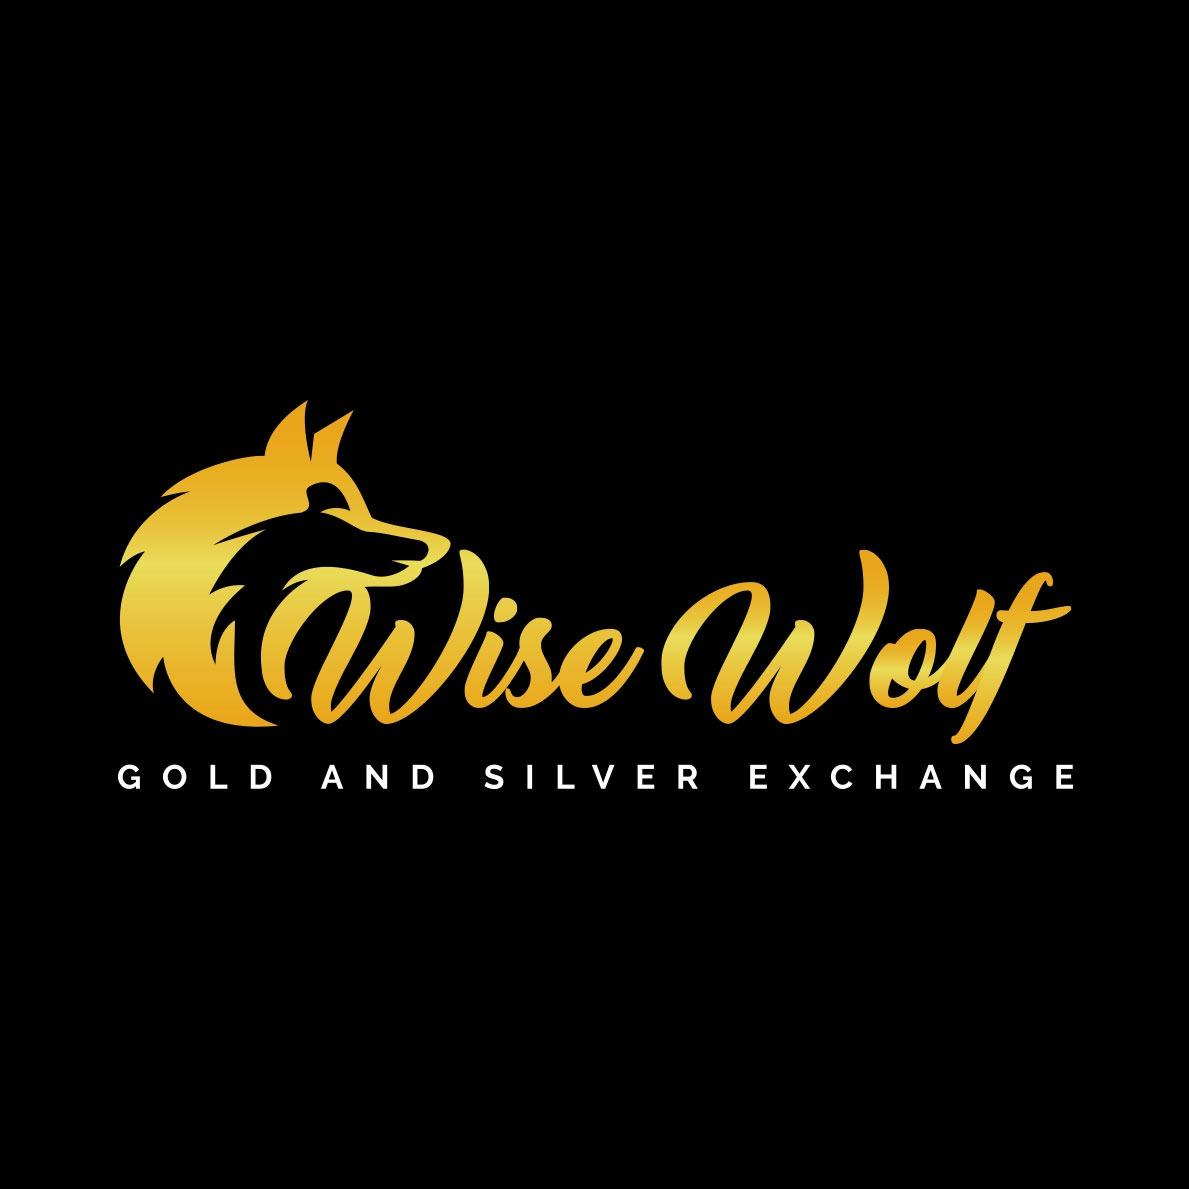 Wise Wolf Gold and Silver Exchange